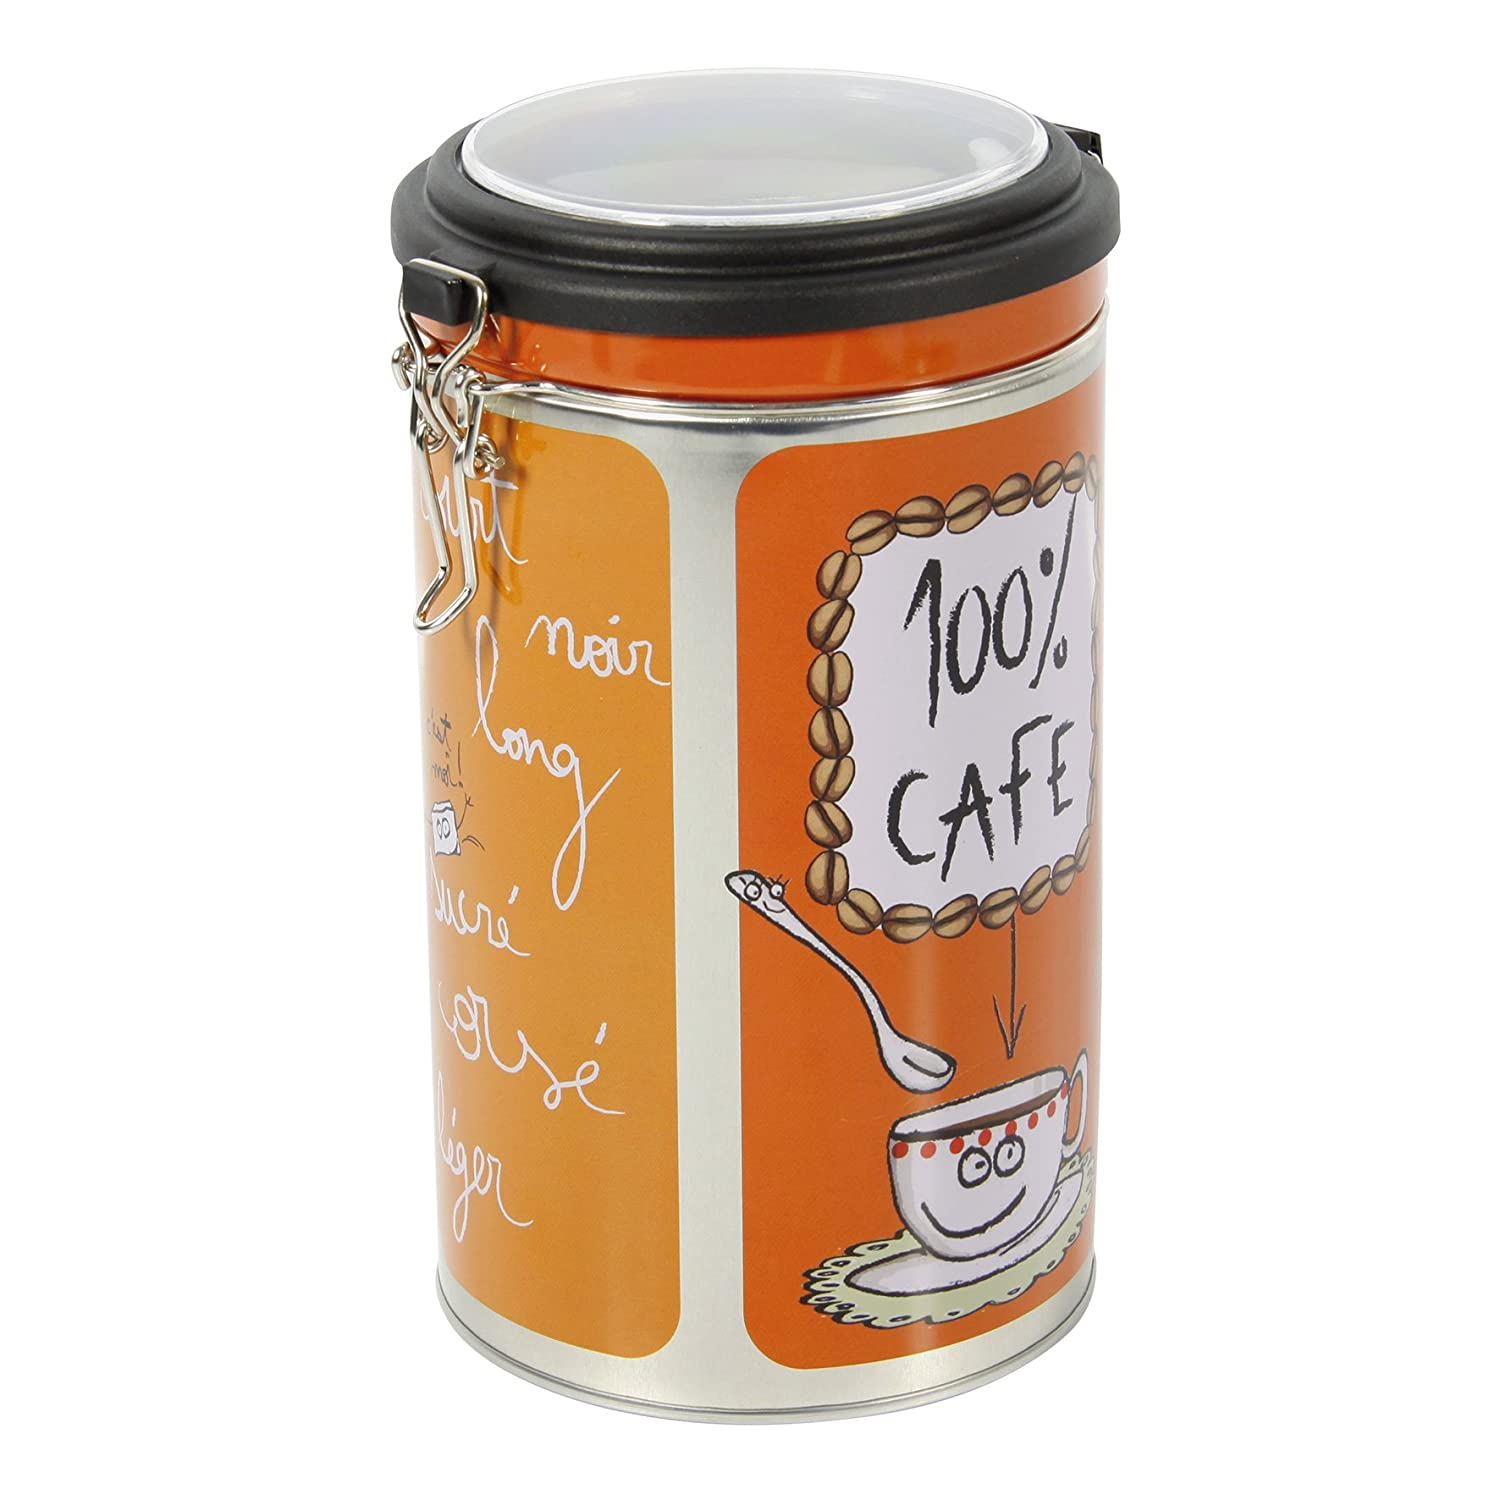 FAVECO 509246 – Management Container Round, Metal, Reason Coffee Colour, 13.5 x 19.2 x 11.5 cm, Multi-Coloured Gers Equipement